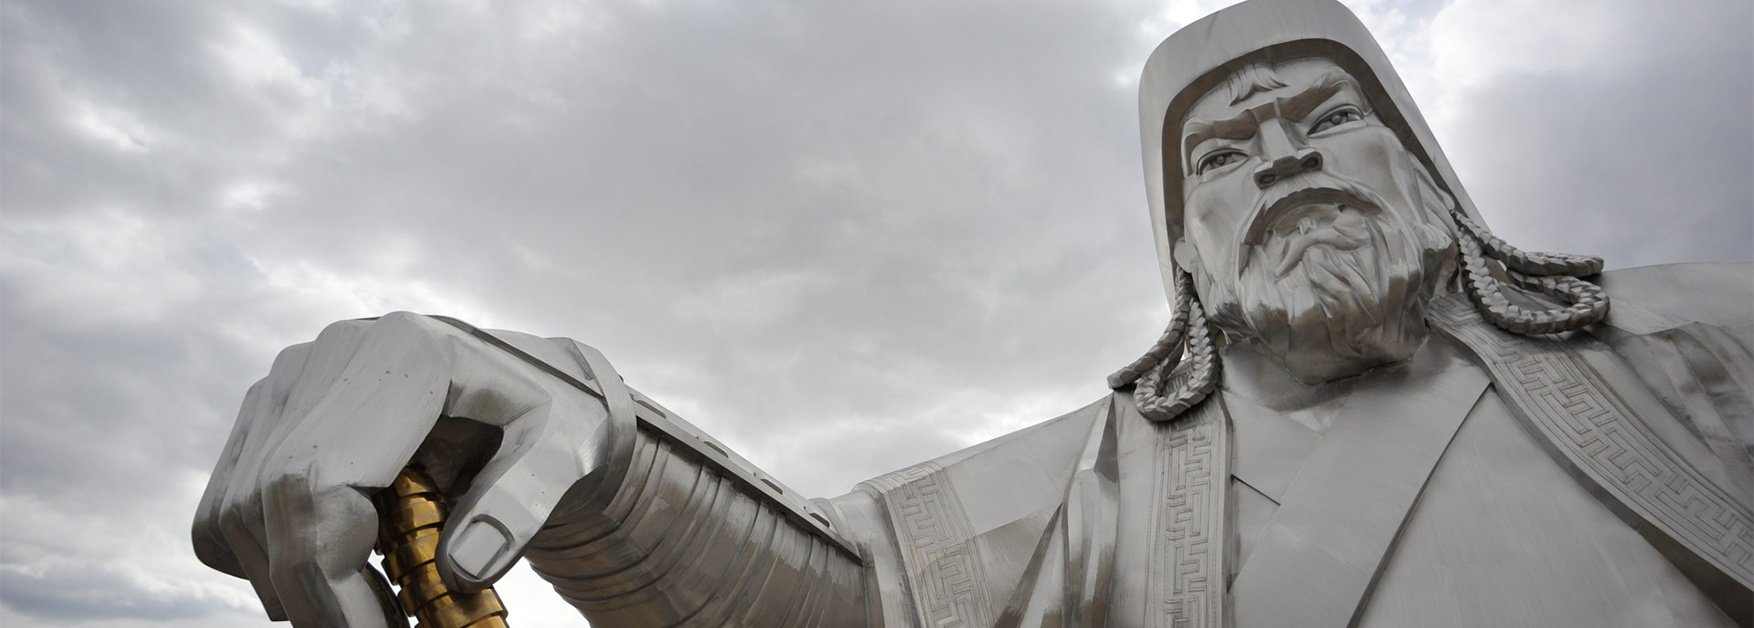 Genghis Khan Strategies for Inbound Marketing 2020 | TransFunnel